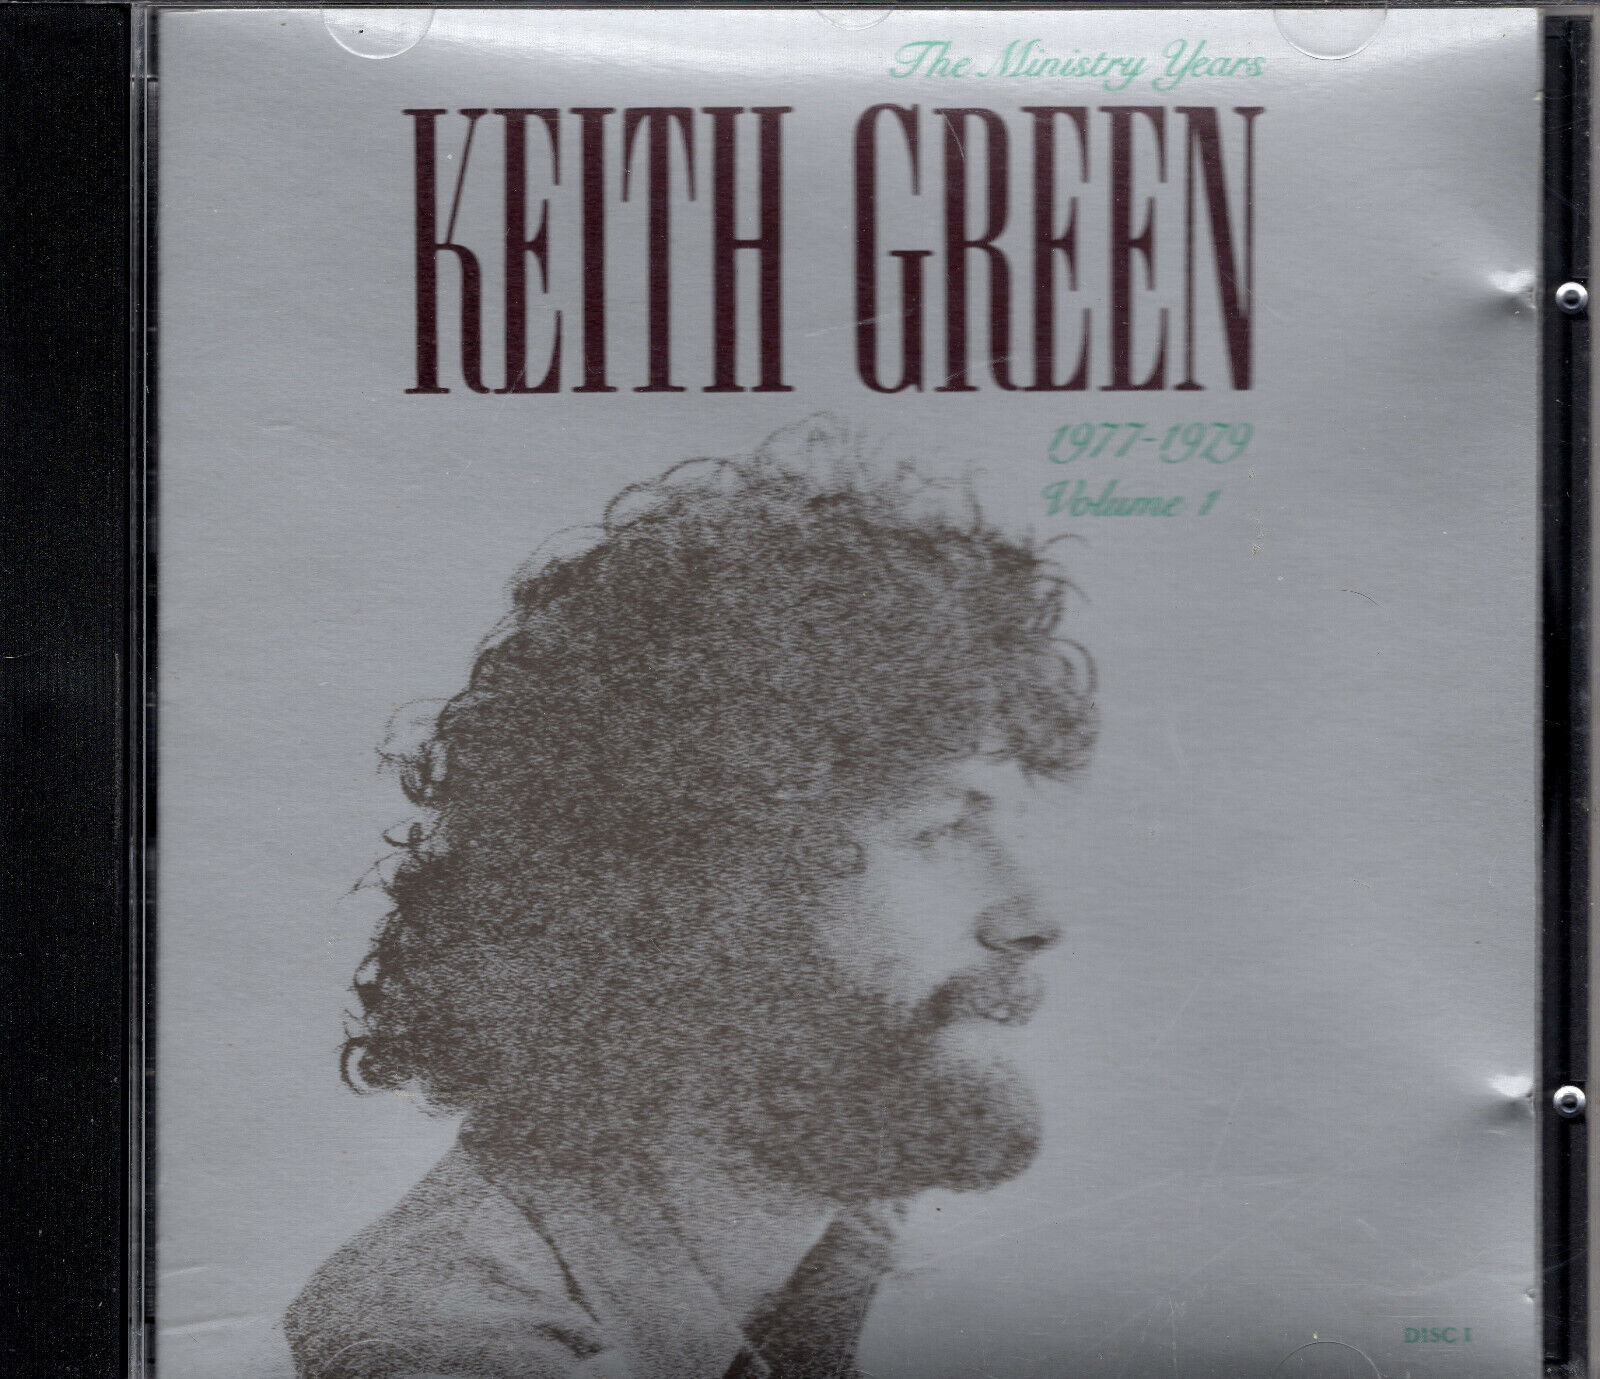 Keith Green The Ministry Years Vol 1 1977-1979 2 Disc Set 38 Songs - $7.99